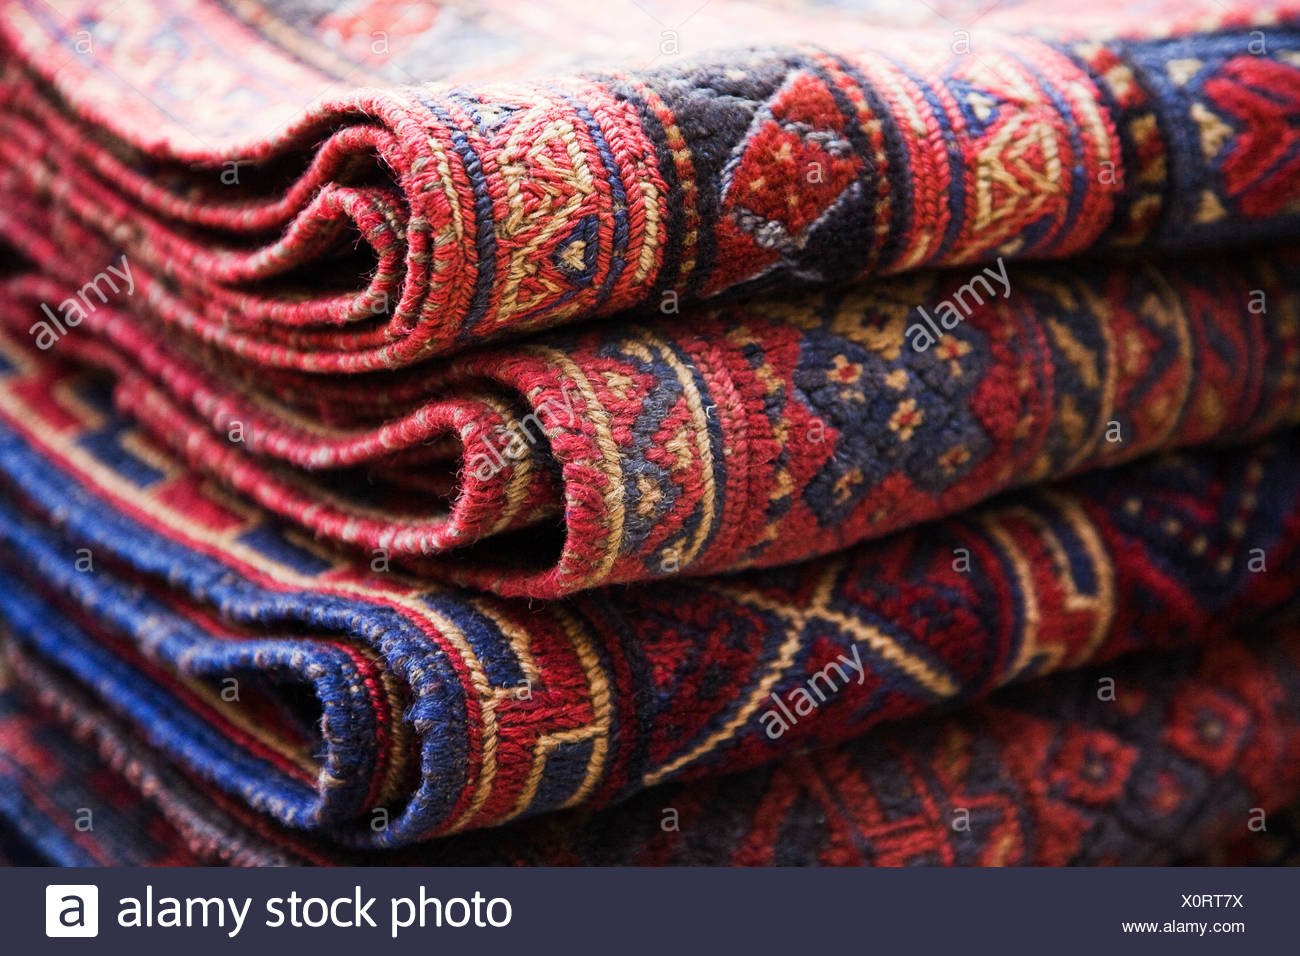 Rugs stacked in market stall - Stock Image